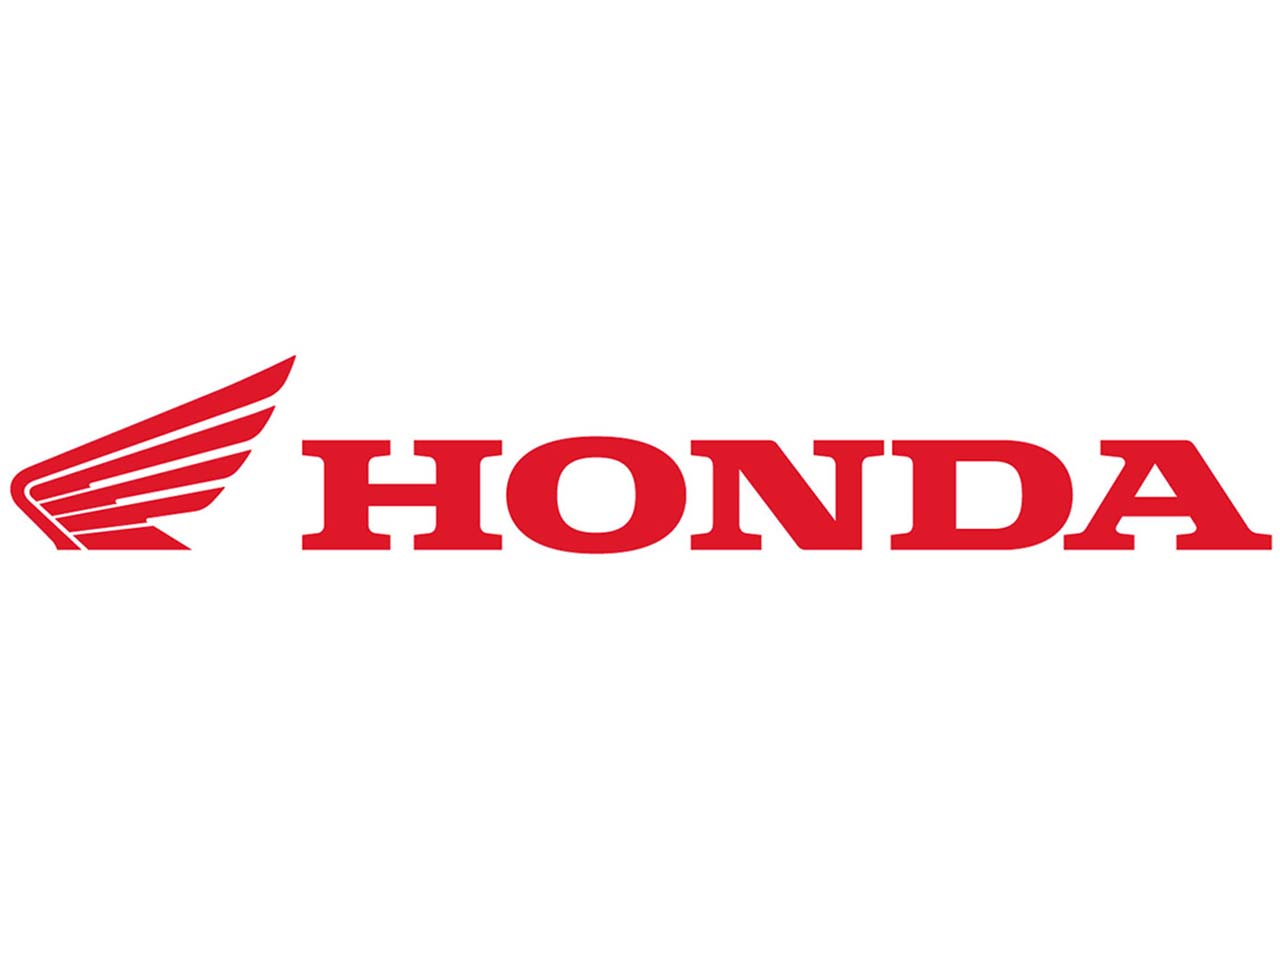 logo.2012.honda_.red_